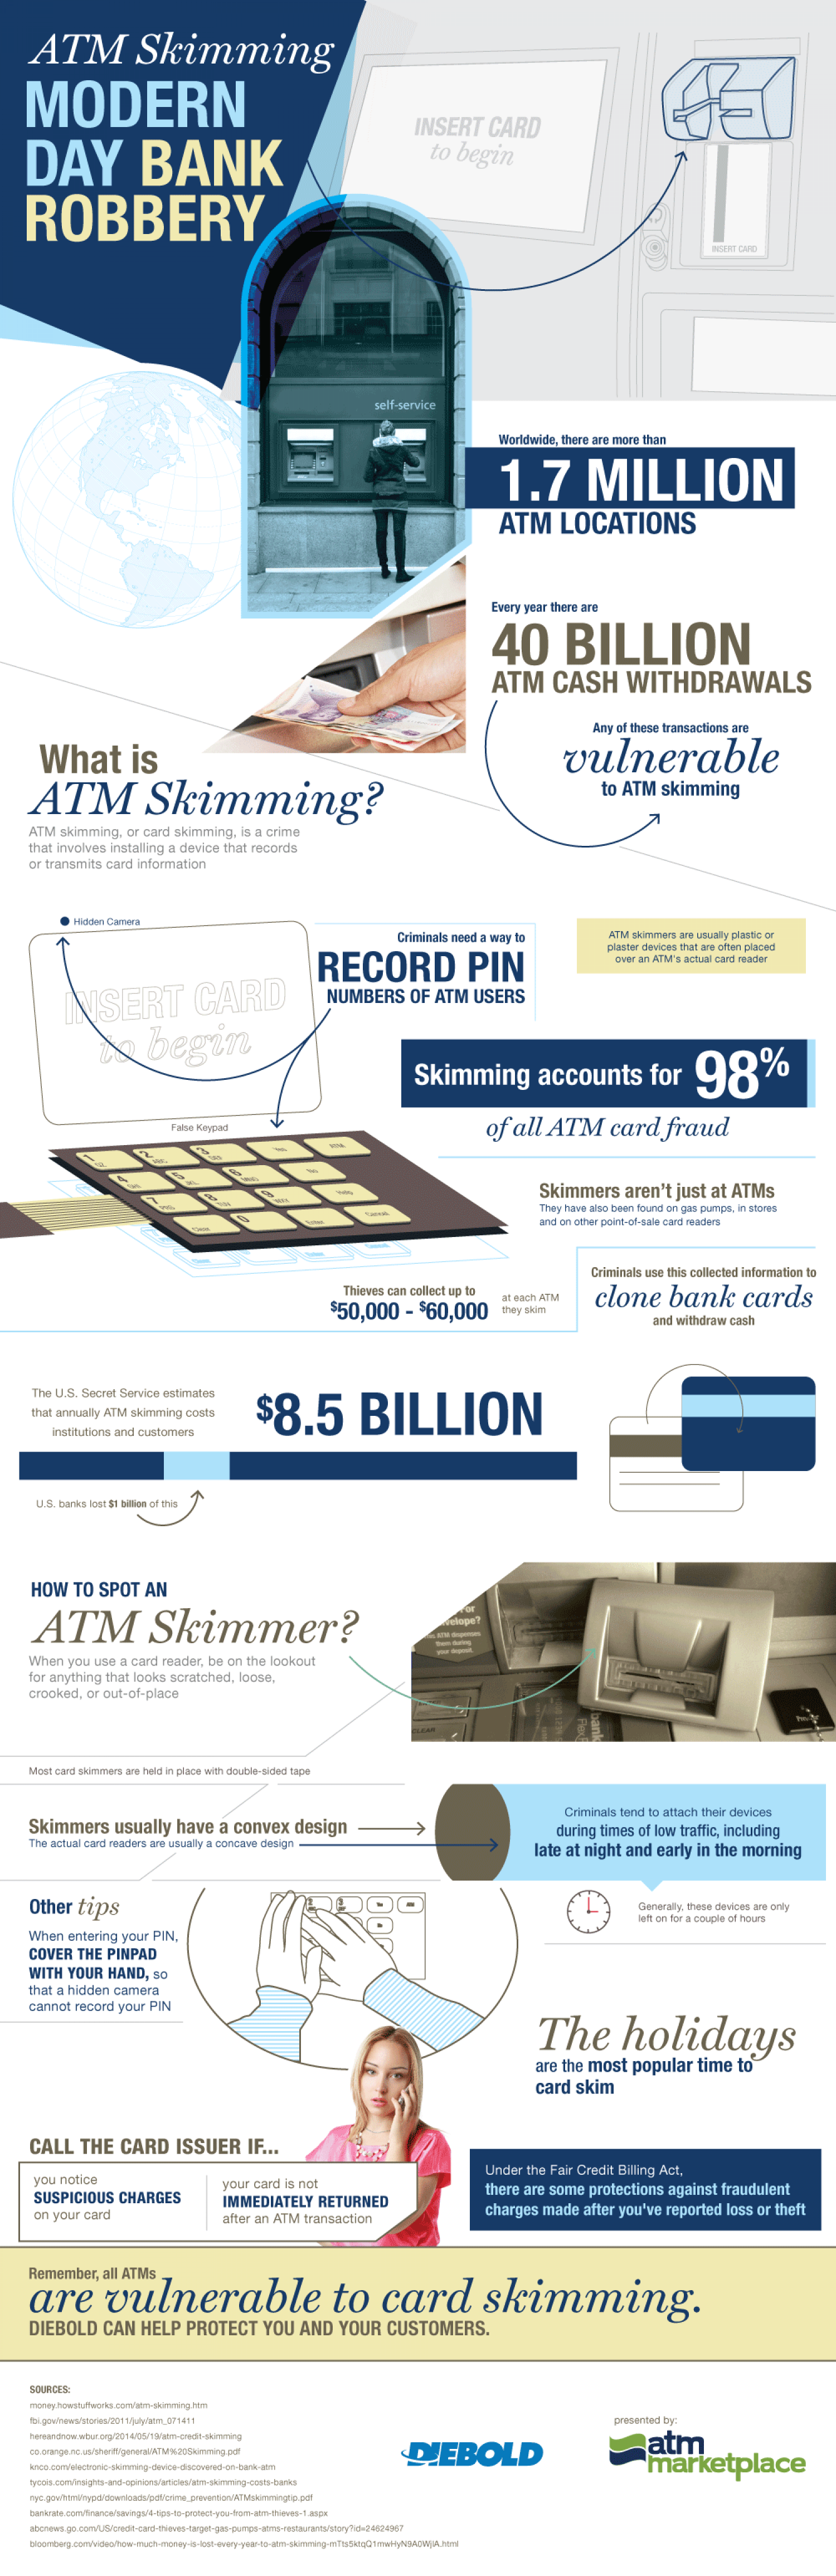 What Is ATM Skimming? Infographic